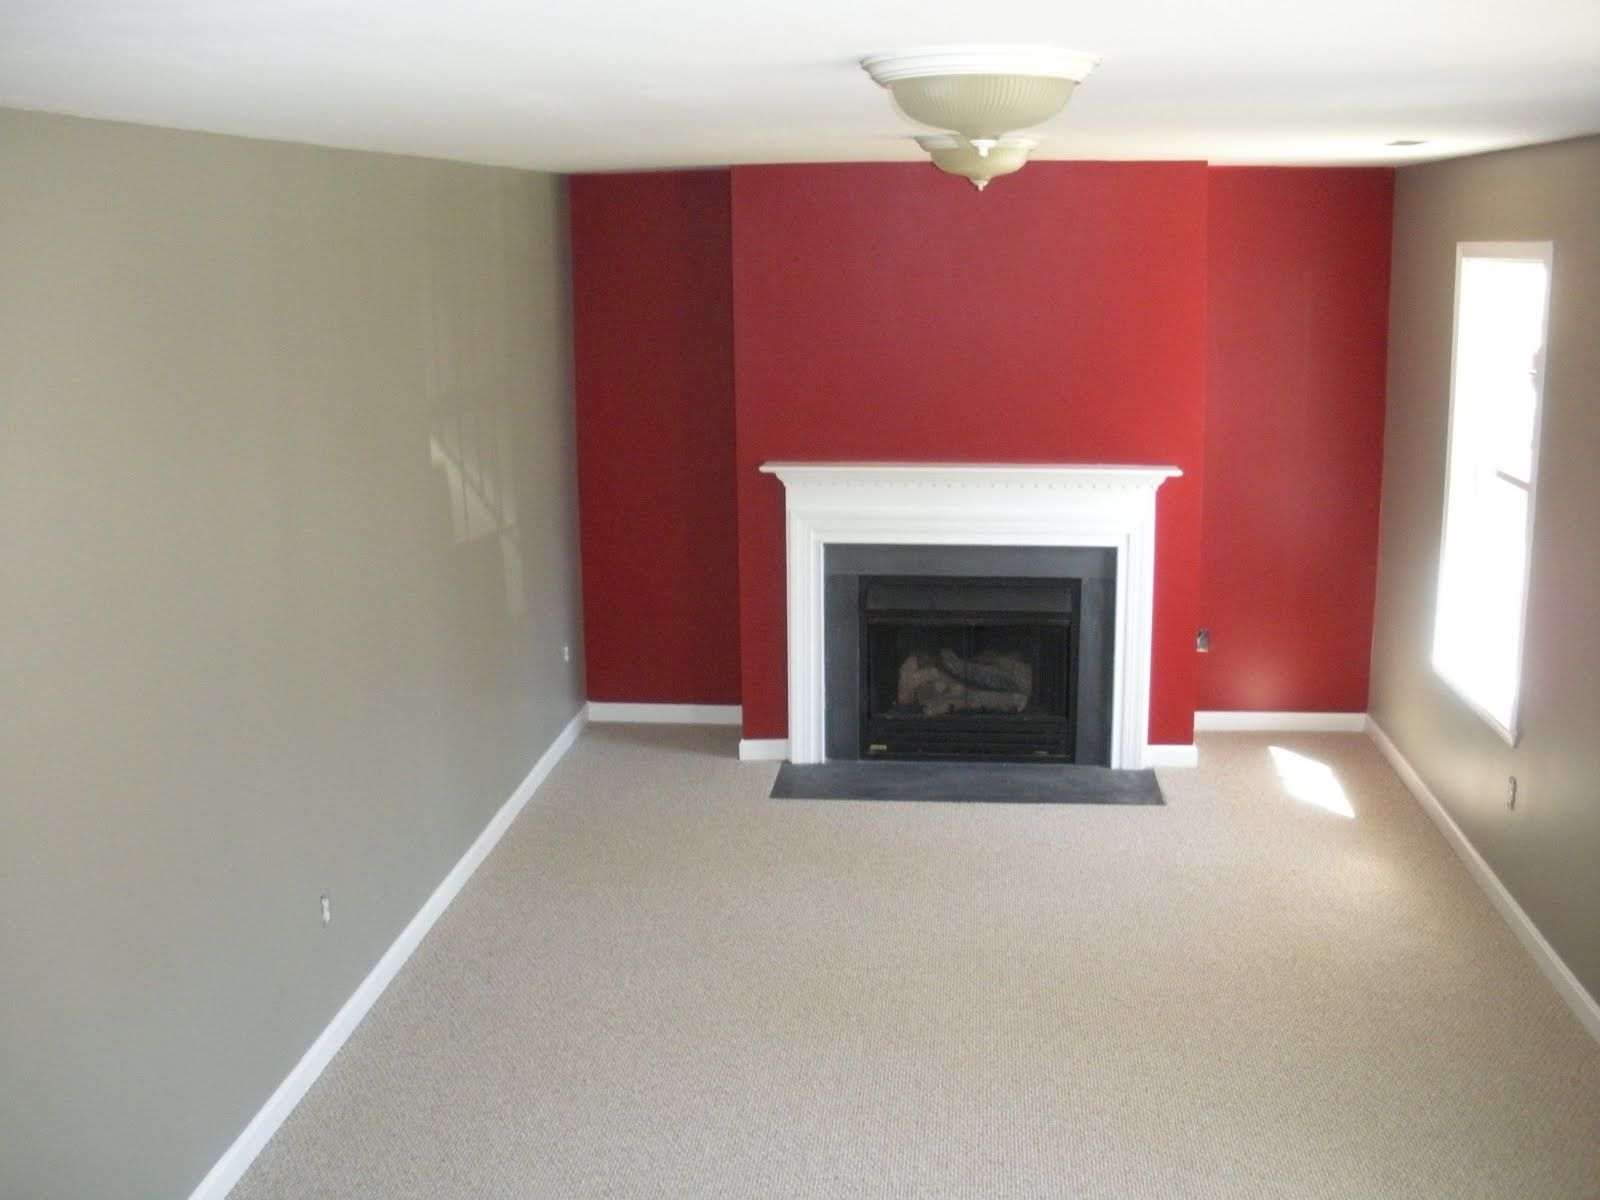 Benjamin Moore Caliente Red Rockport Gray And Wilmington Tan - Deep red accent wall